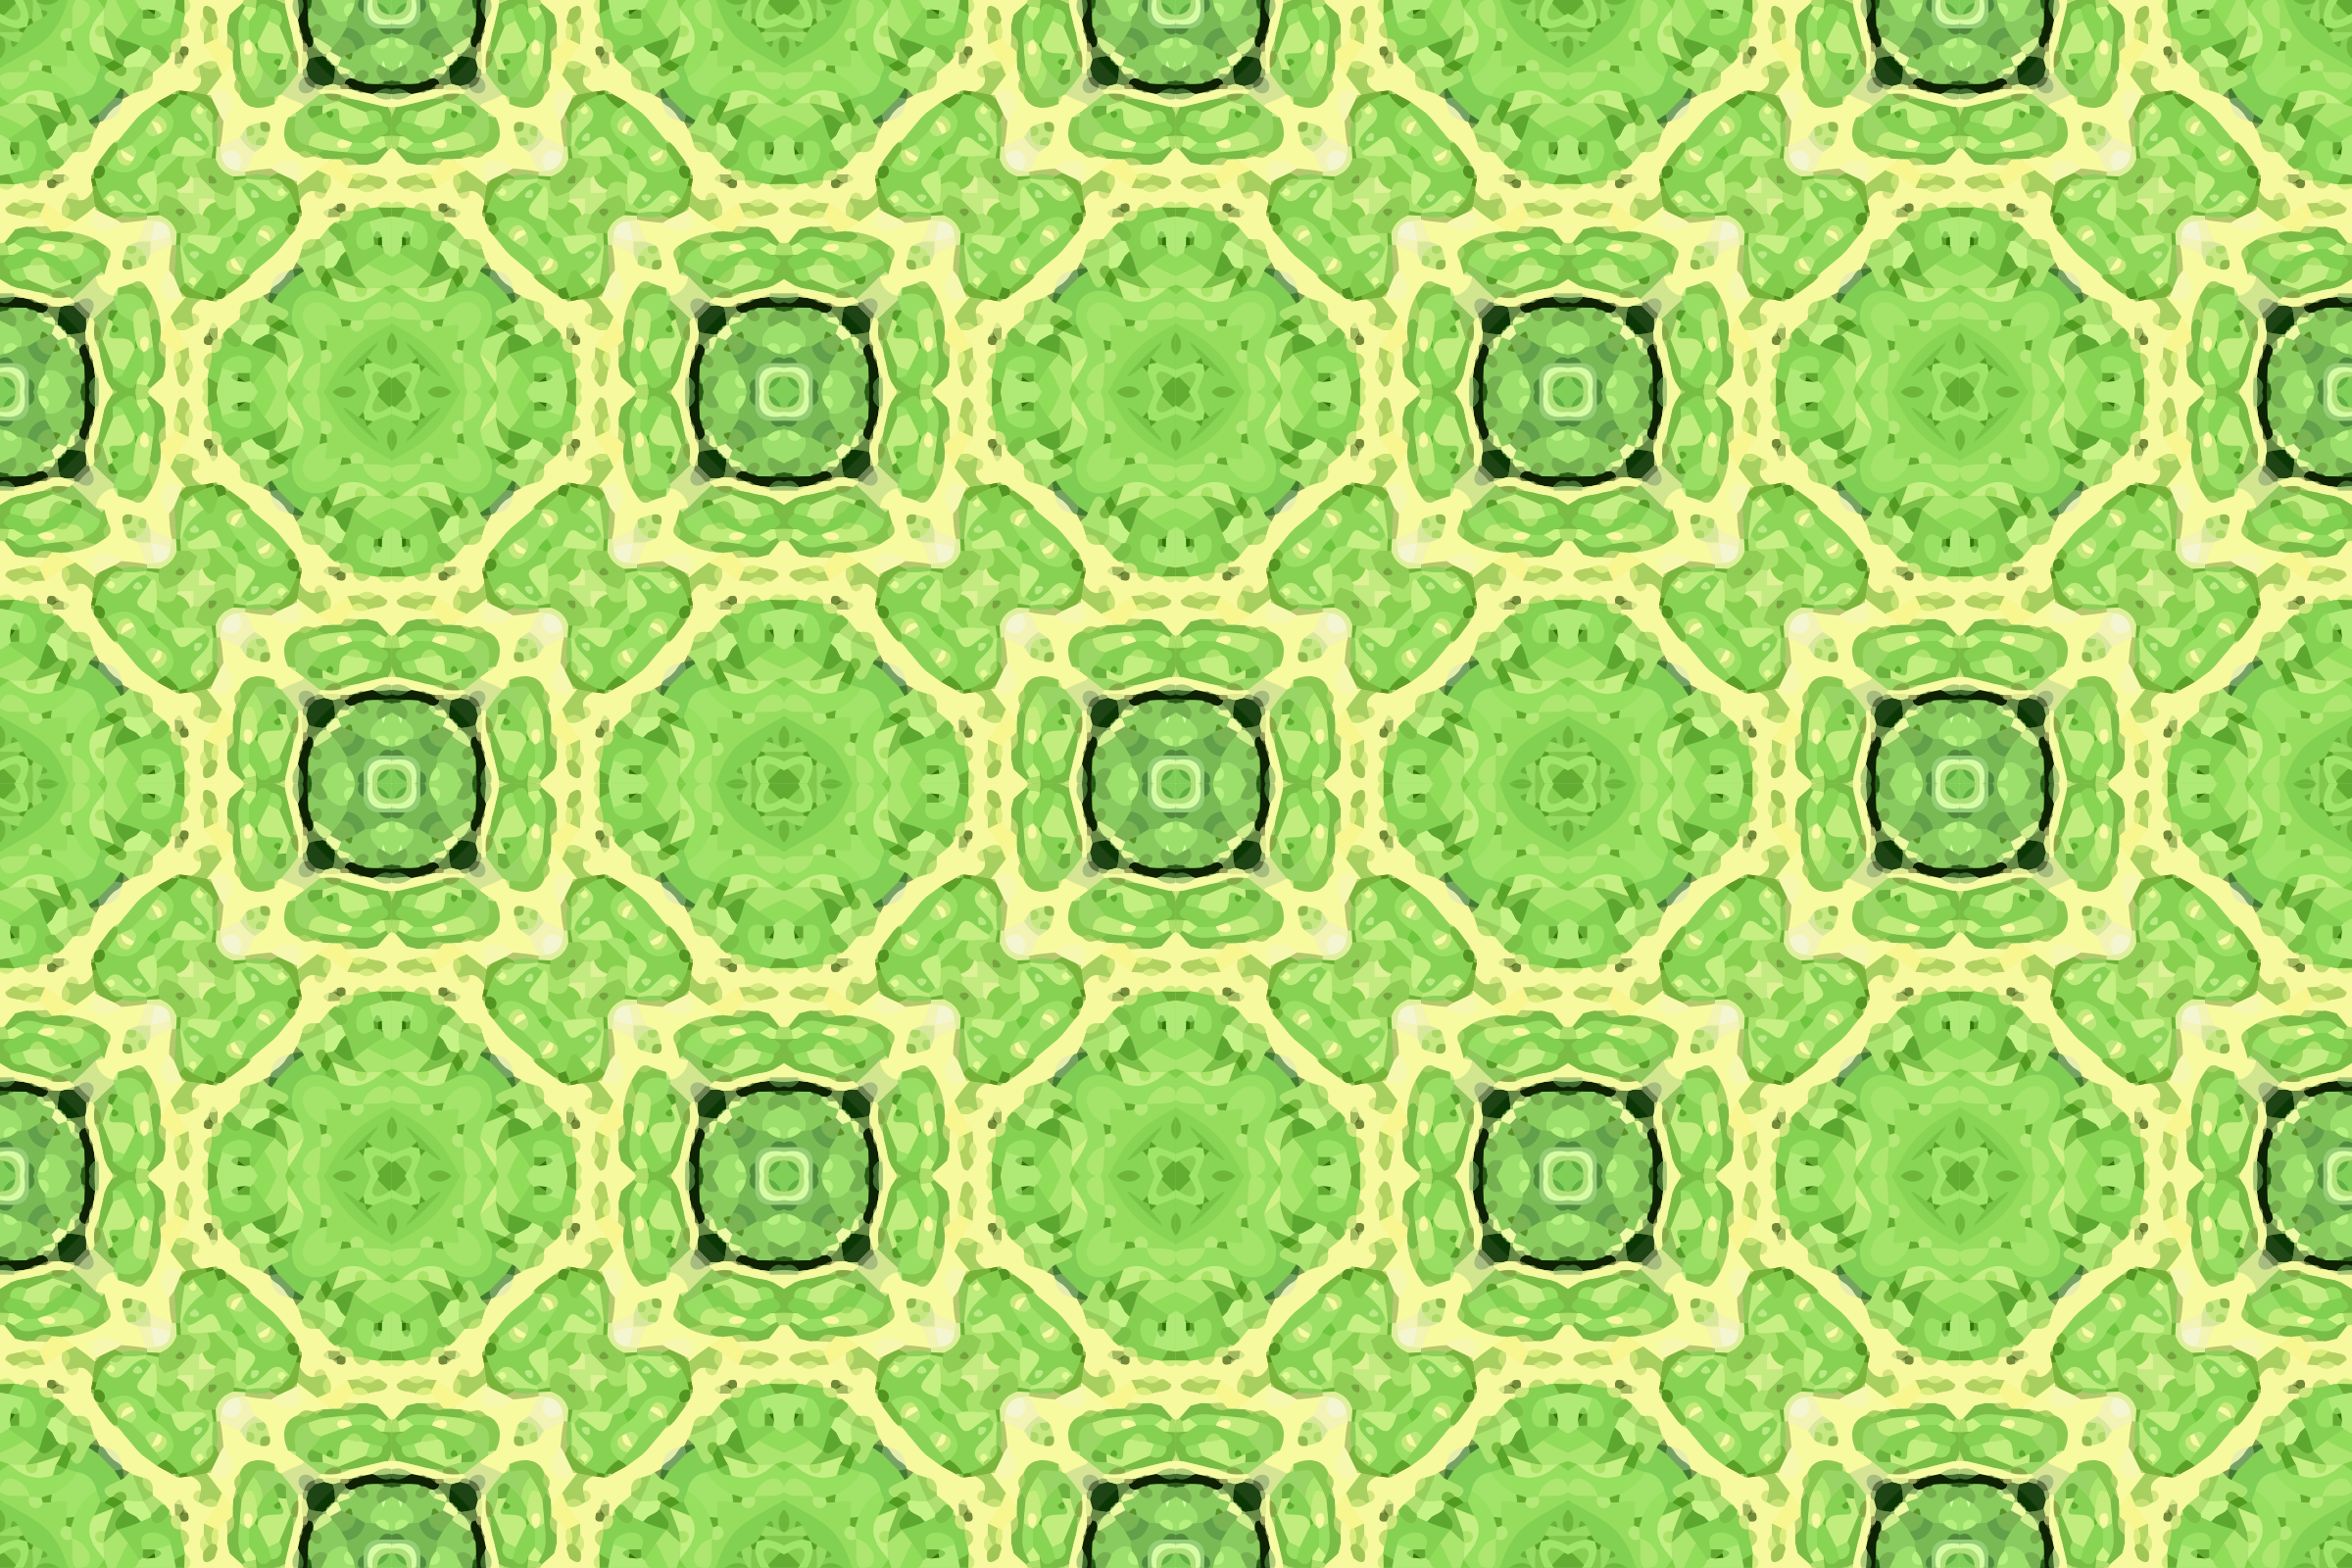 Background pattern 185 (colour 4) by Firkin